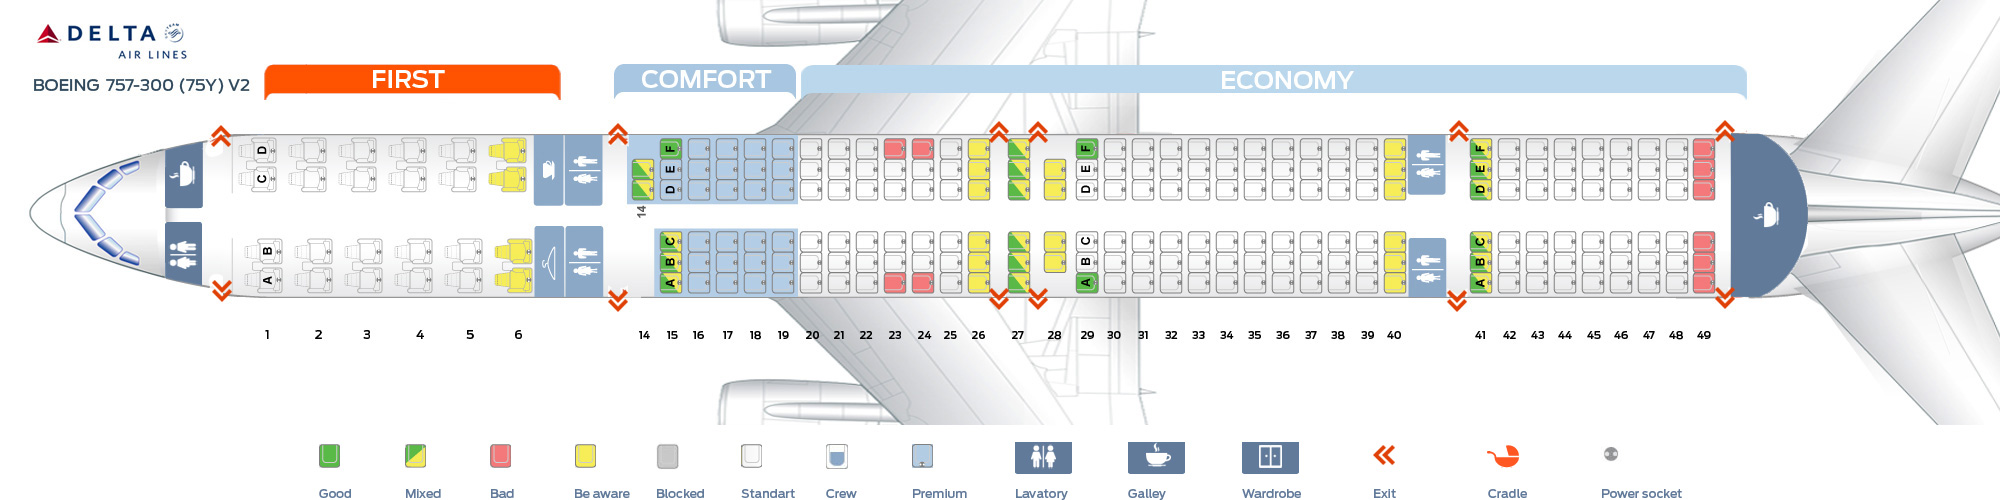 Seat_map_Delta_Airlines_Boeing_757-300_v2_75Y